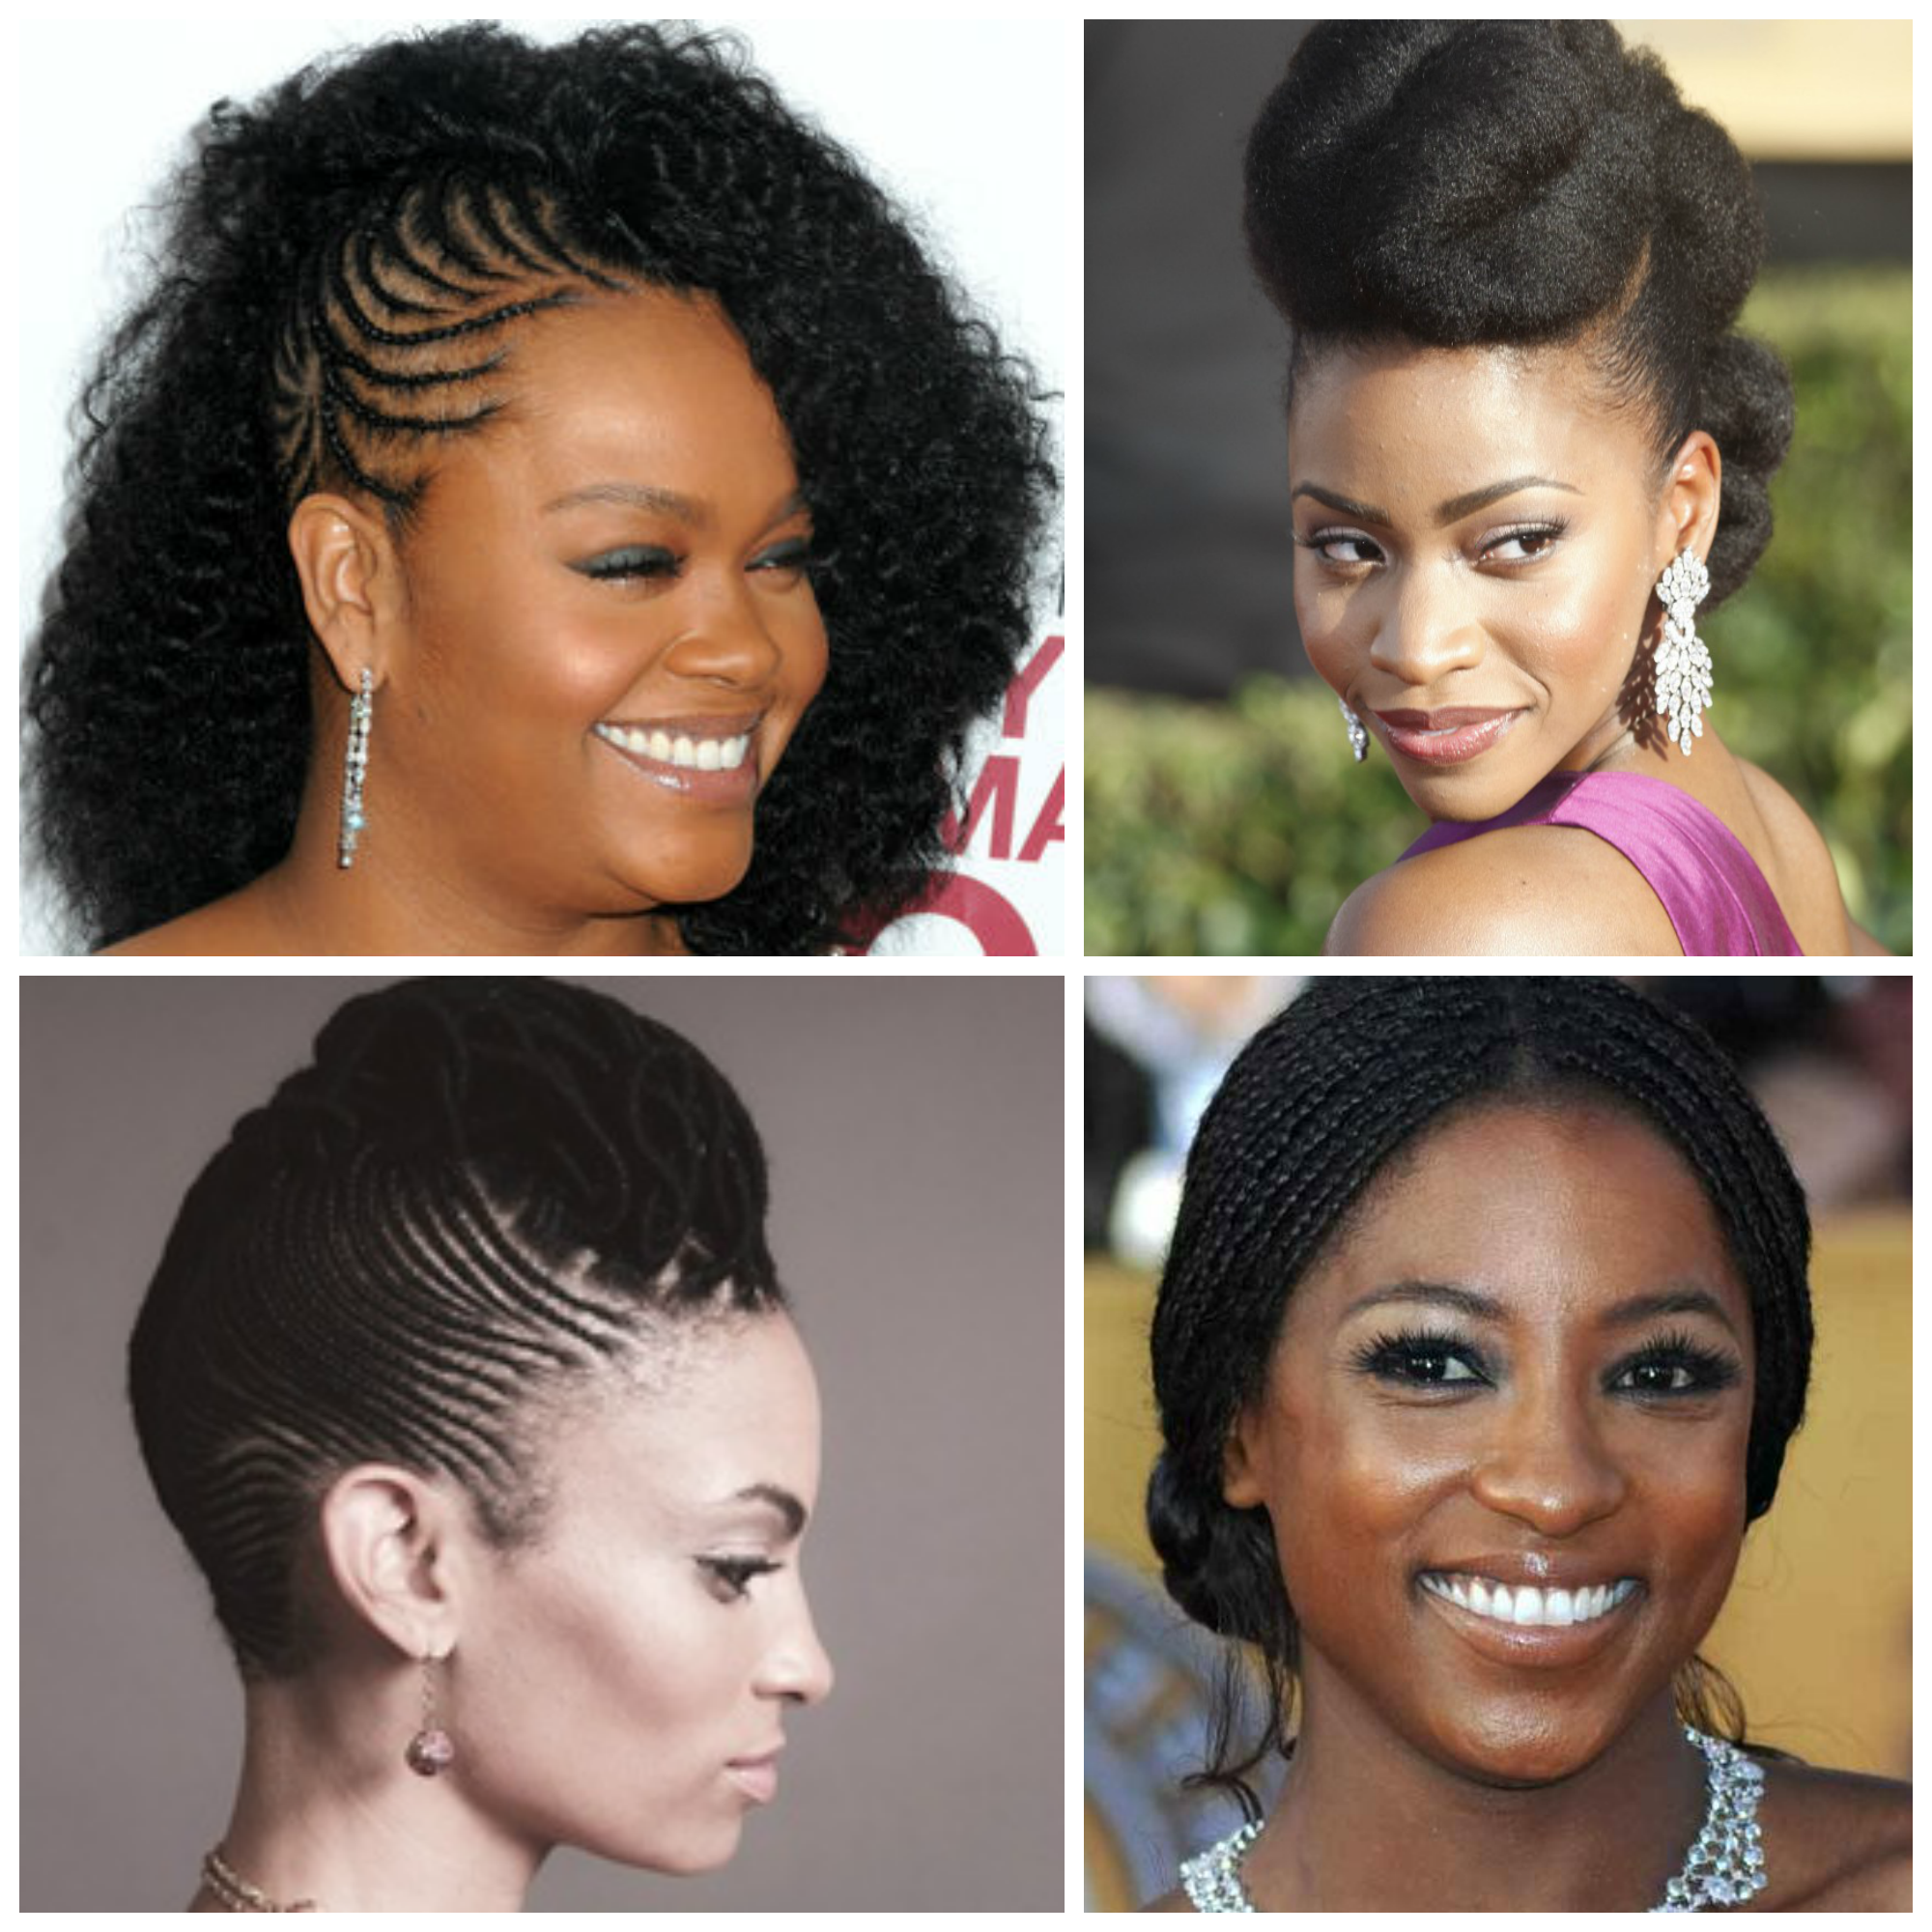 Hairstyles for African American Men - LiveAbout